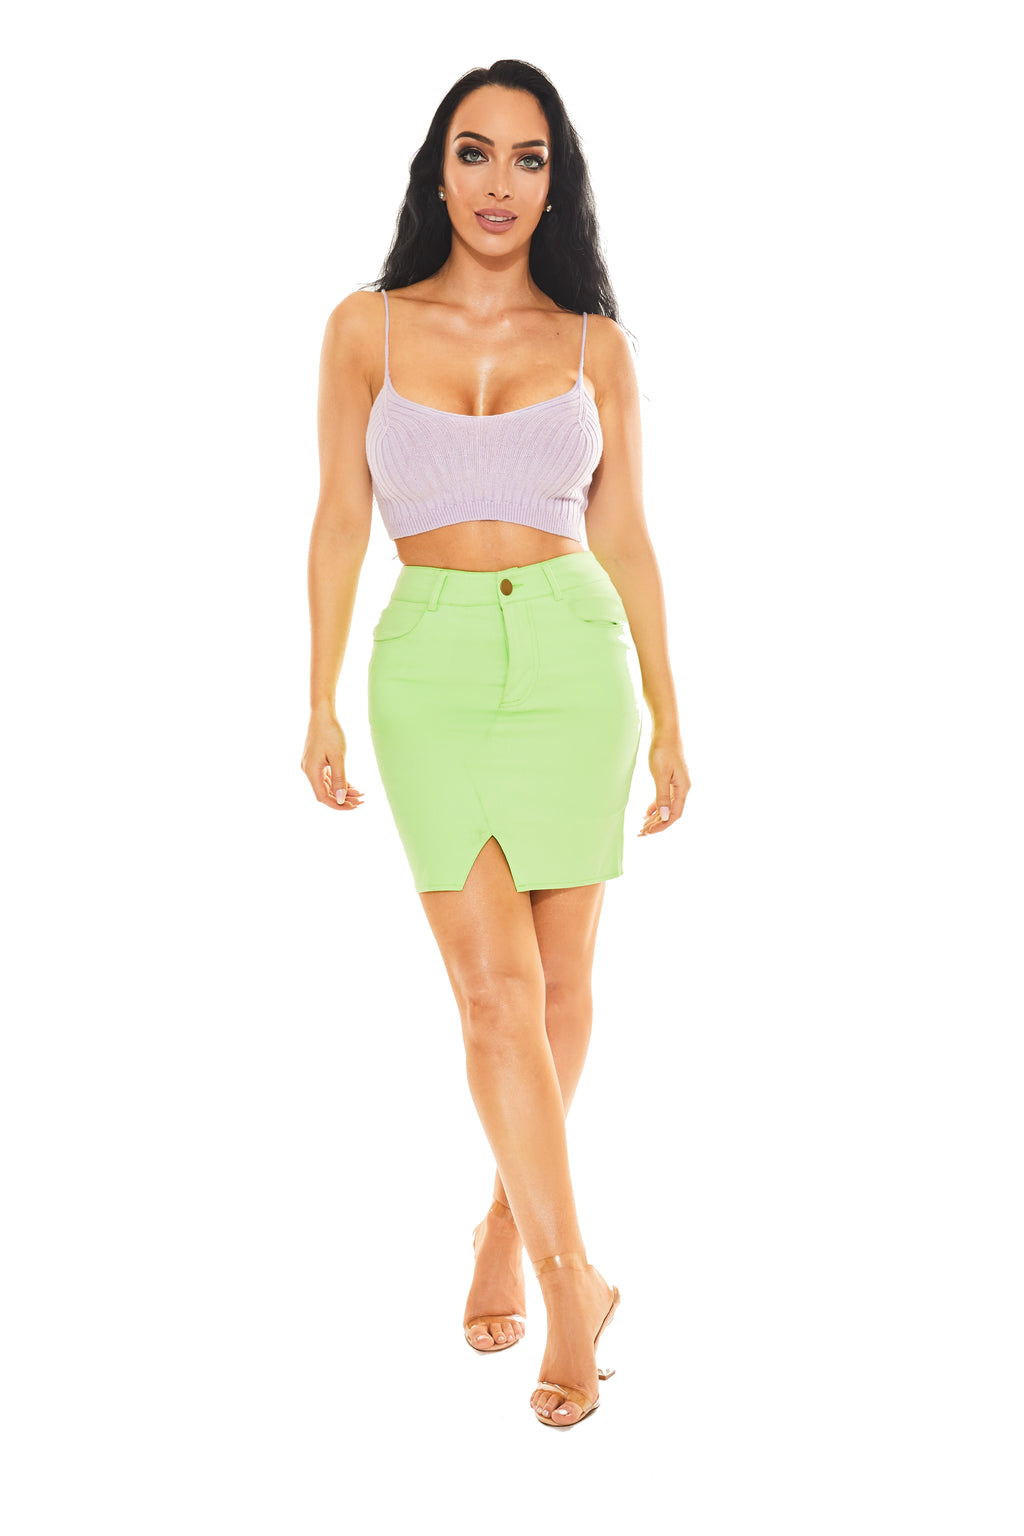 STAND OUT MINI SKIRT - Neon Green - www.prettyboutique.com